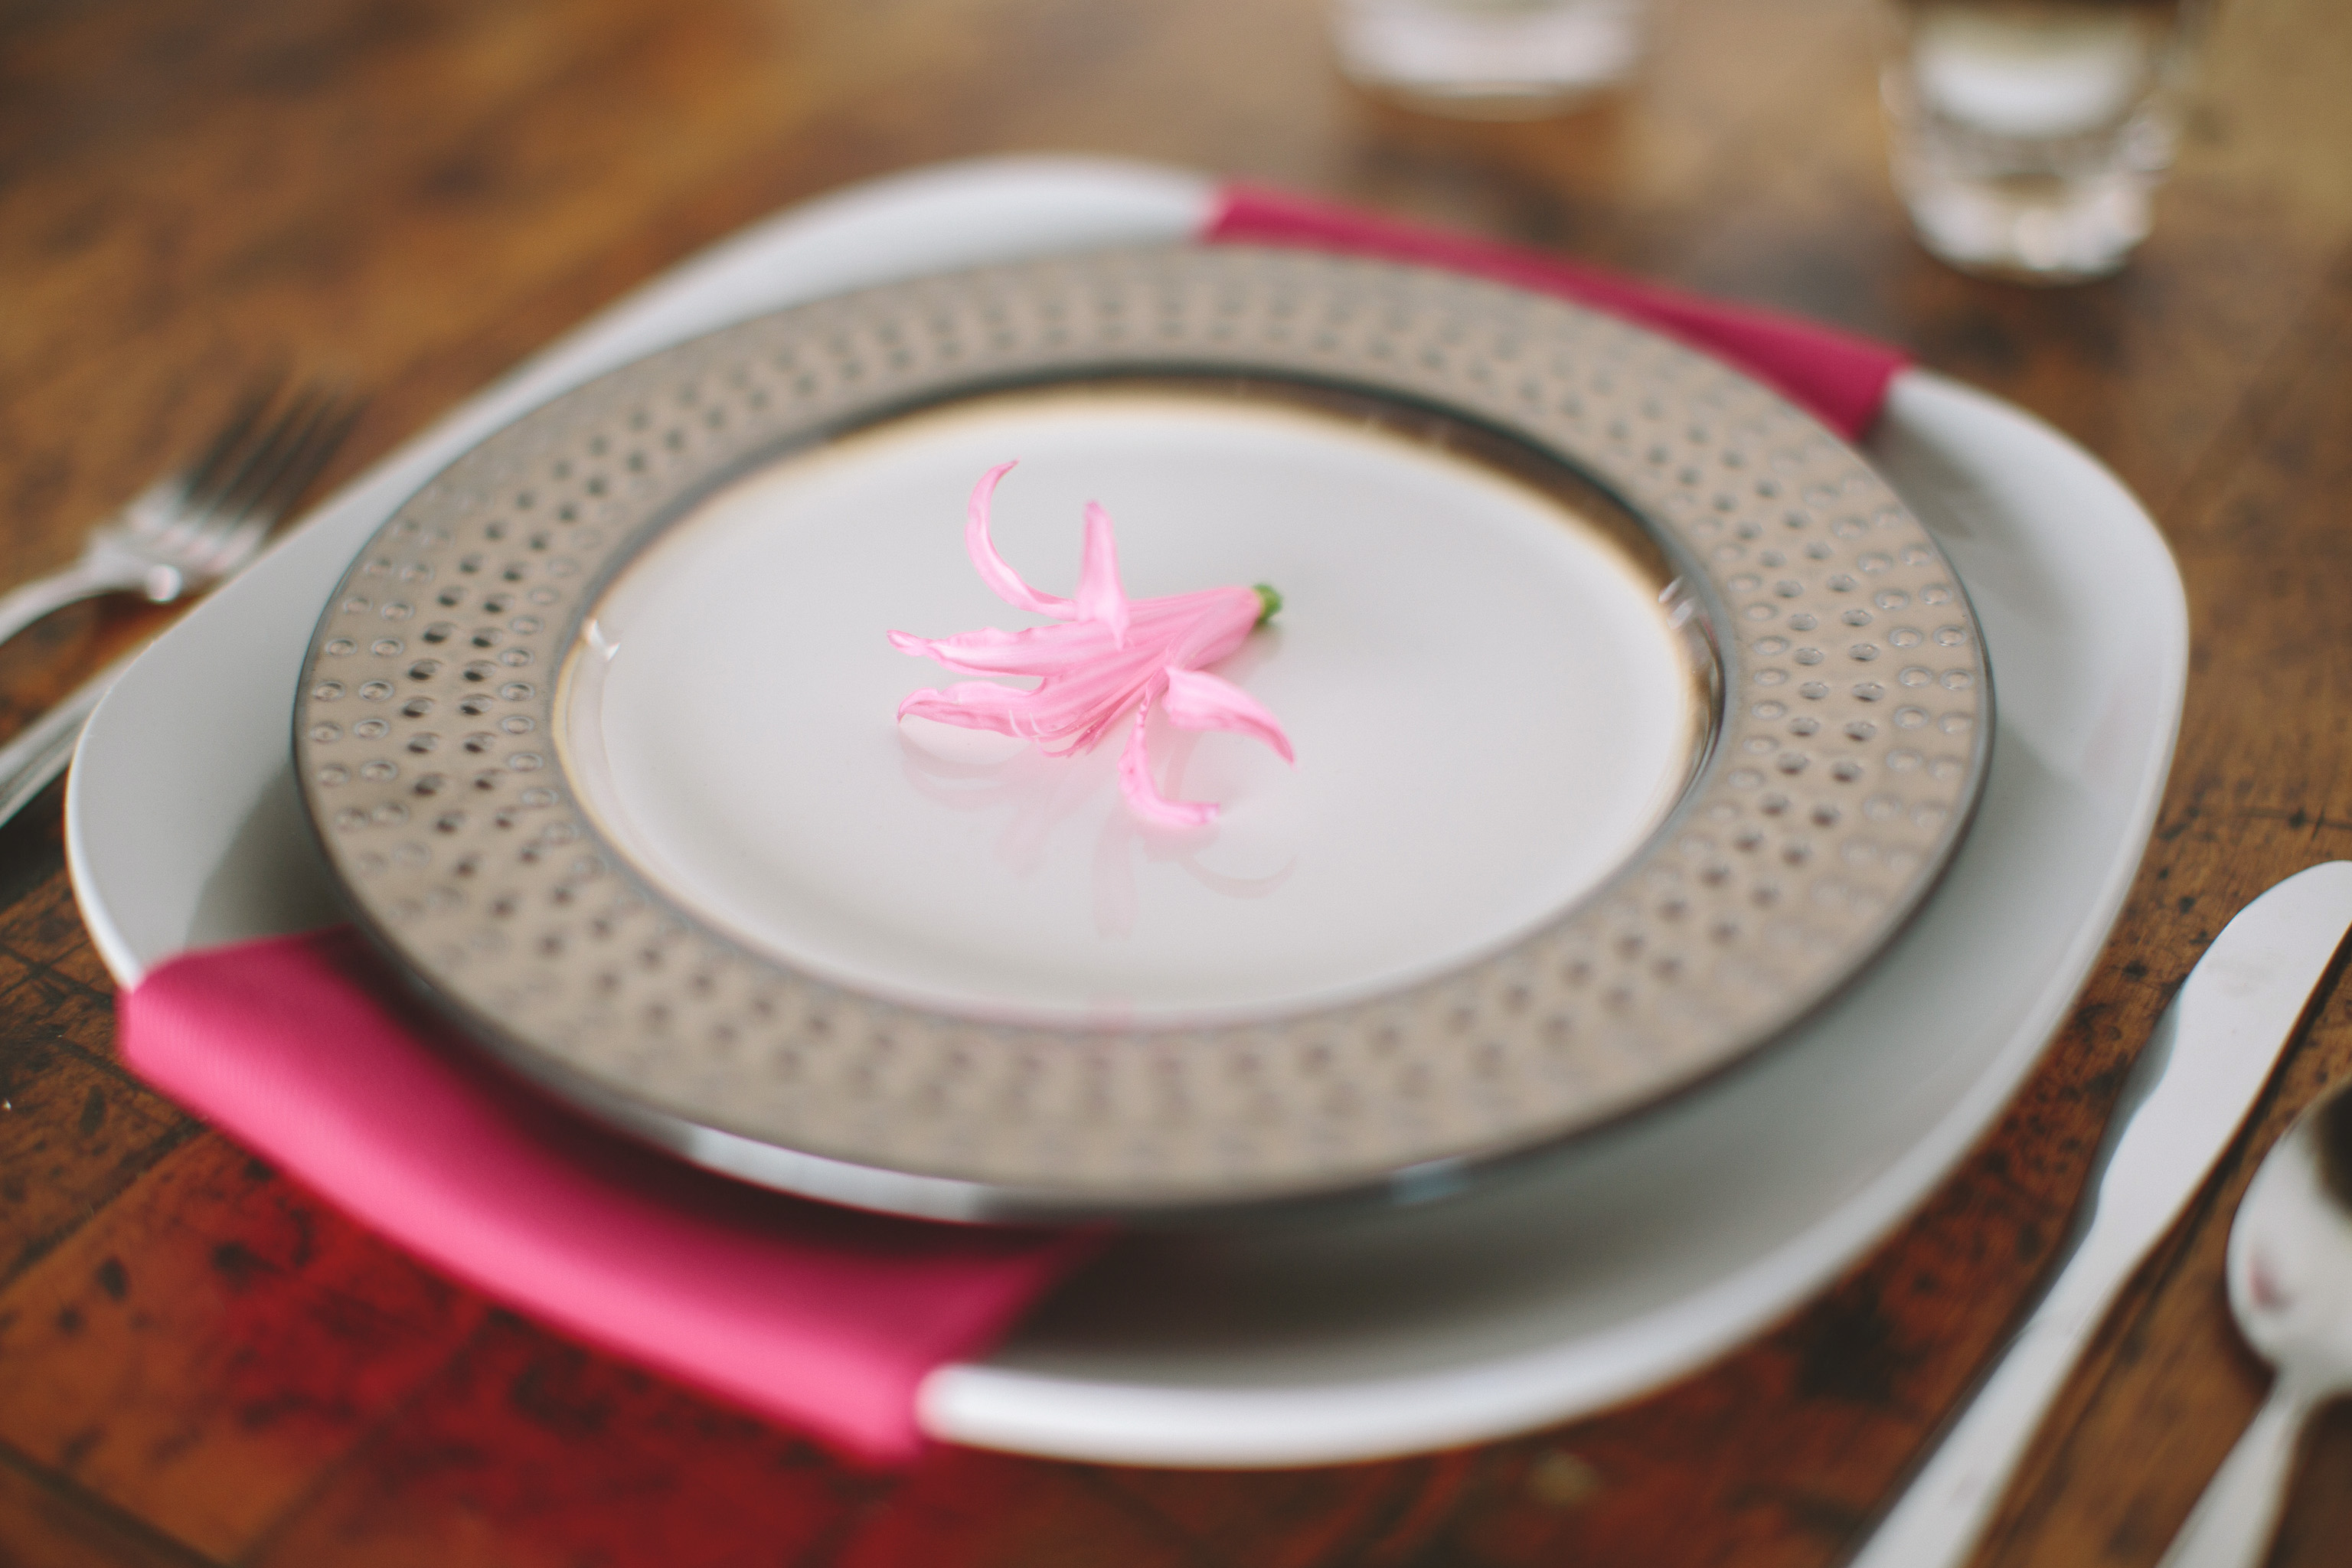 plate with pink napkin and pink flower accent